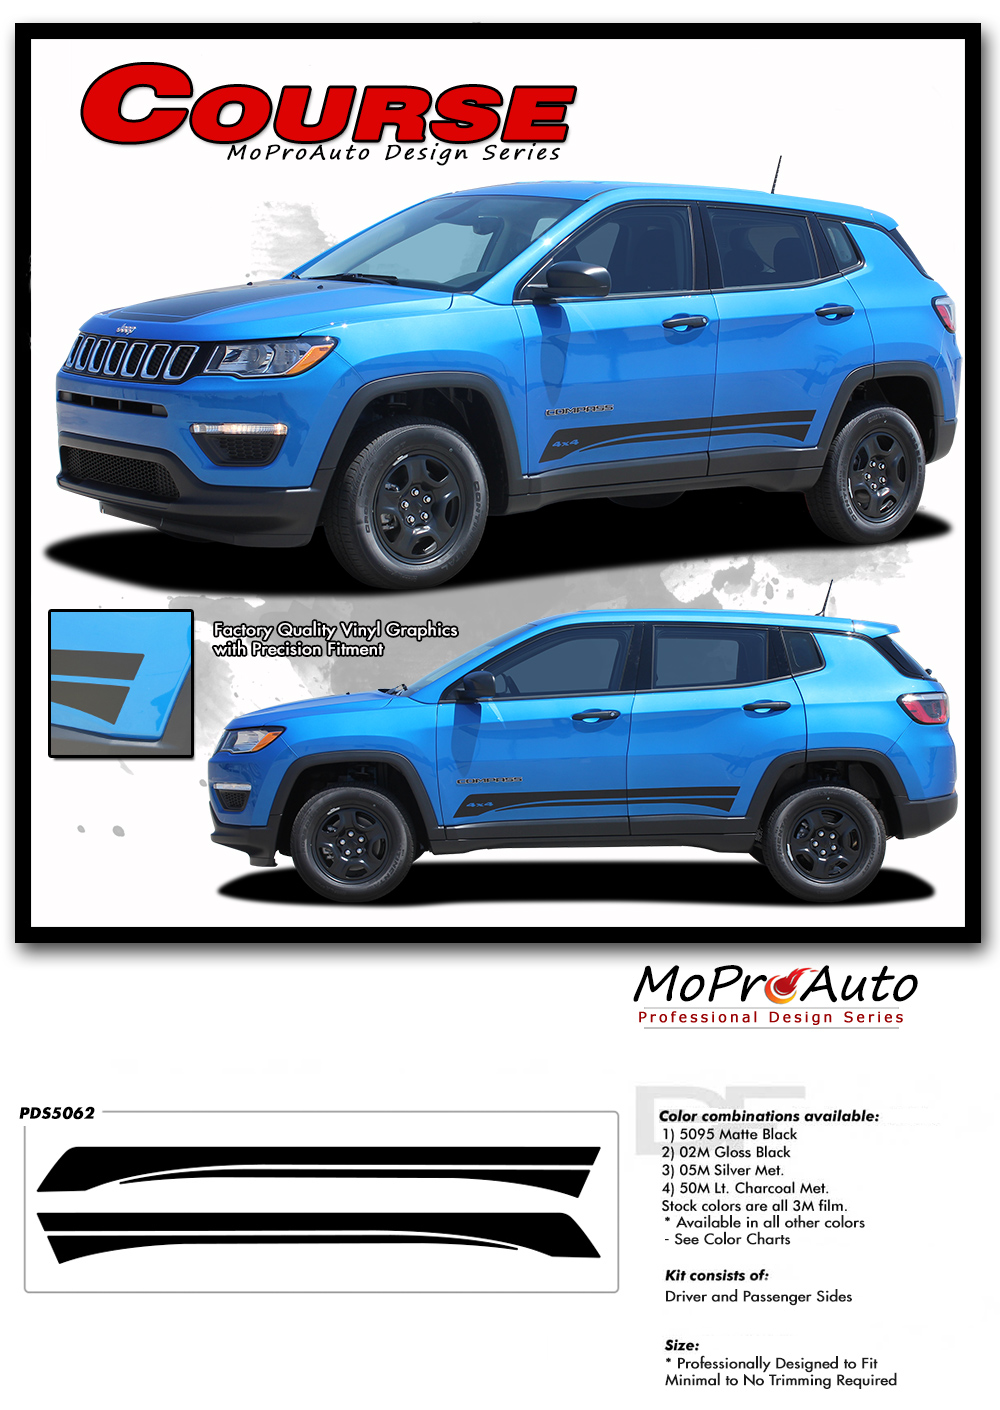 2017, 2018, 2019, 2020 Jeep Compass Vinyl Graphics Decals Stripes - MoProAuto Pro Design Series - Course